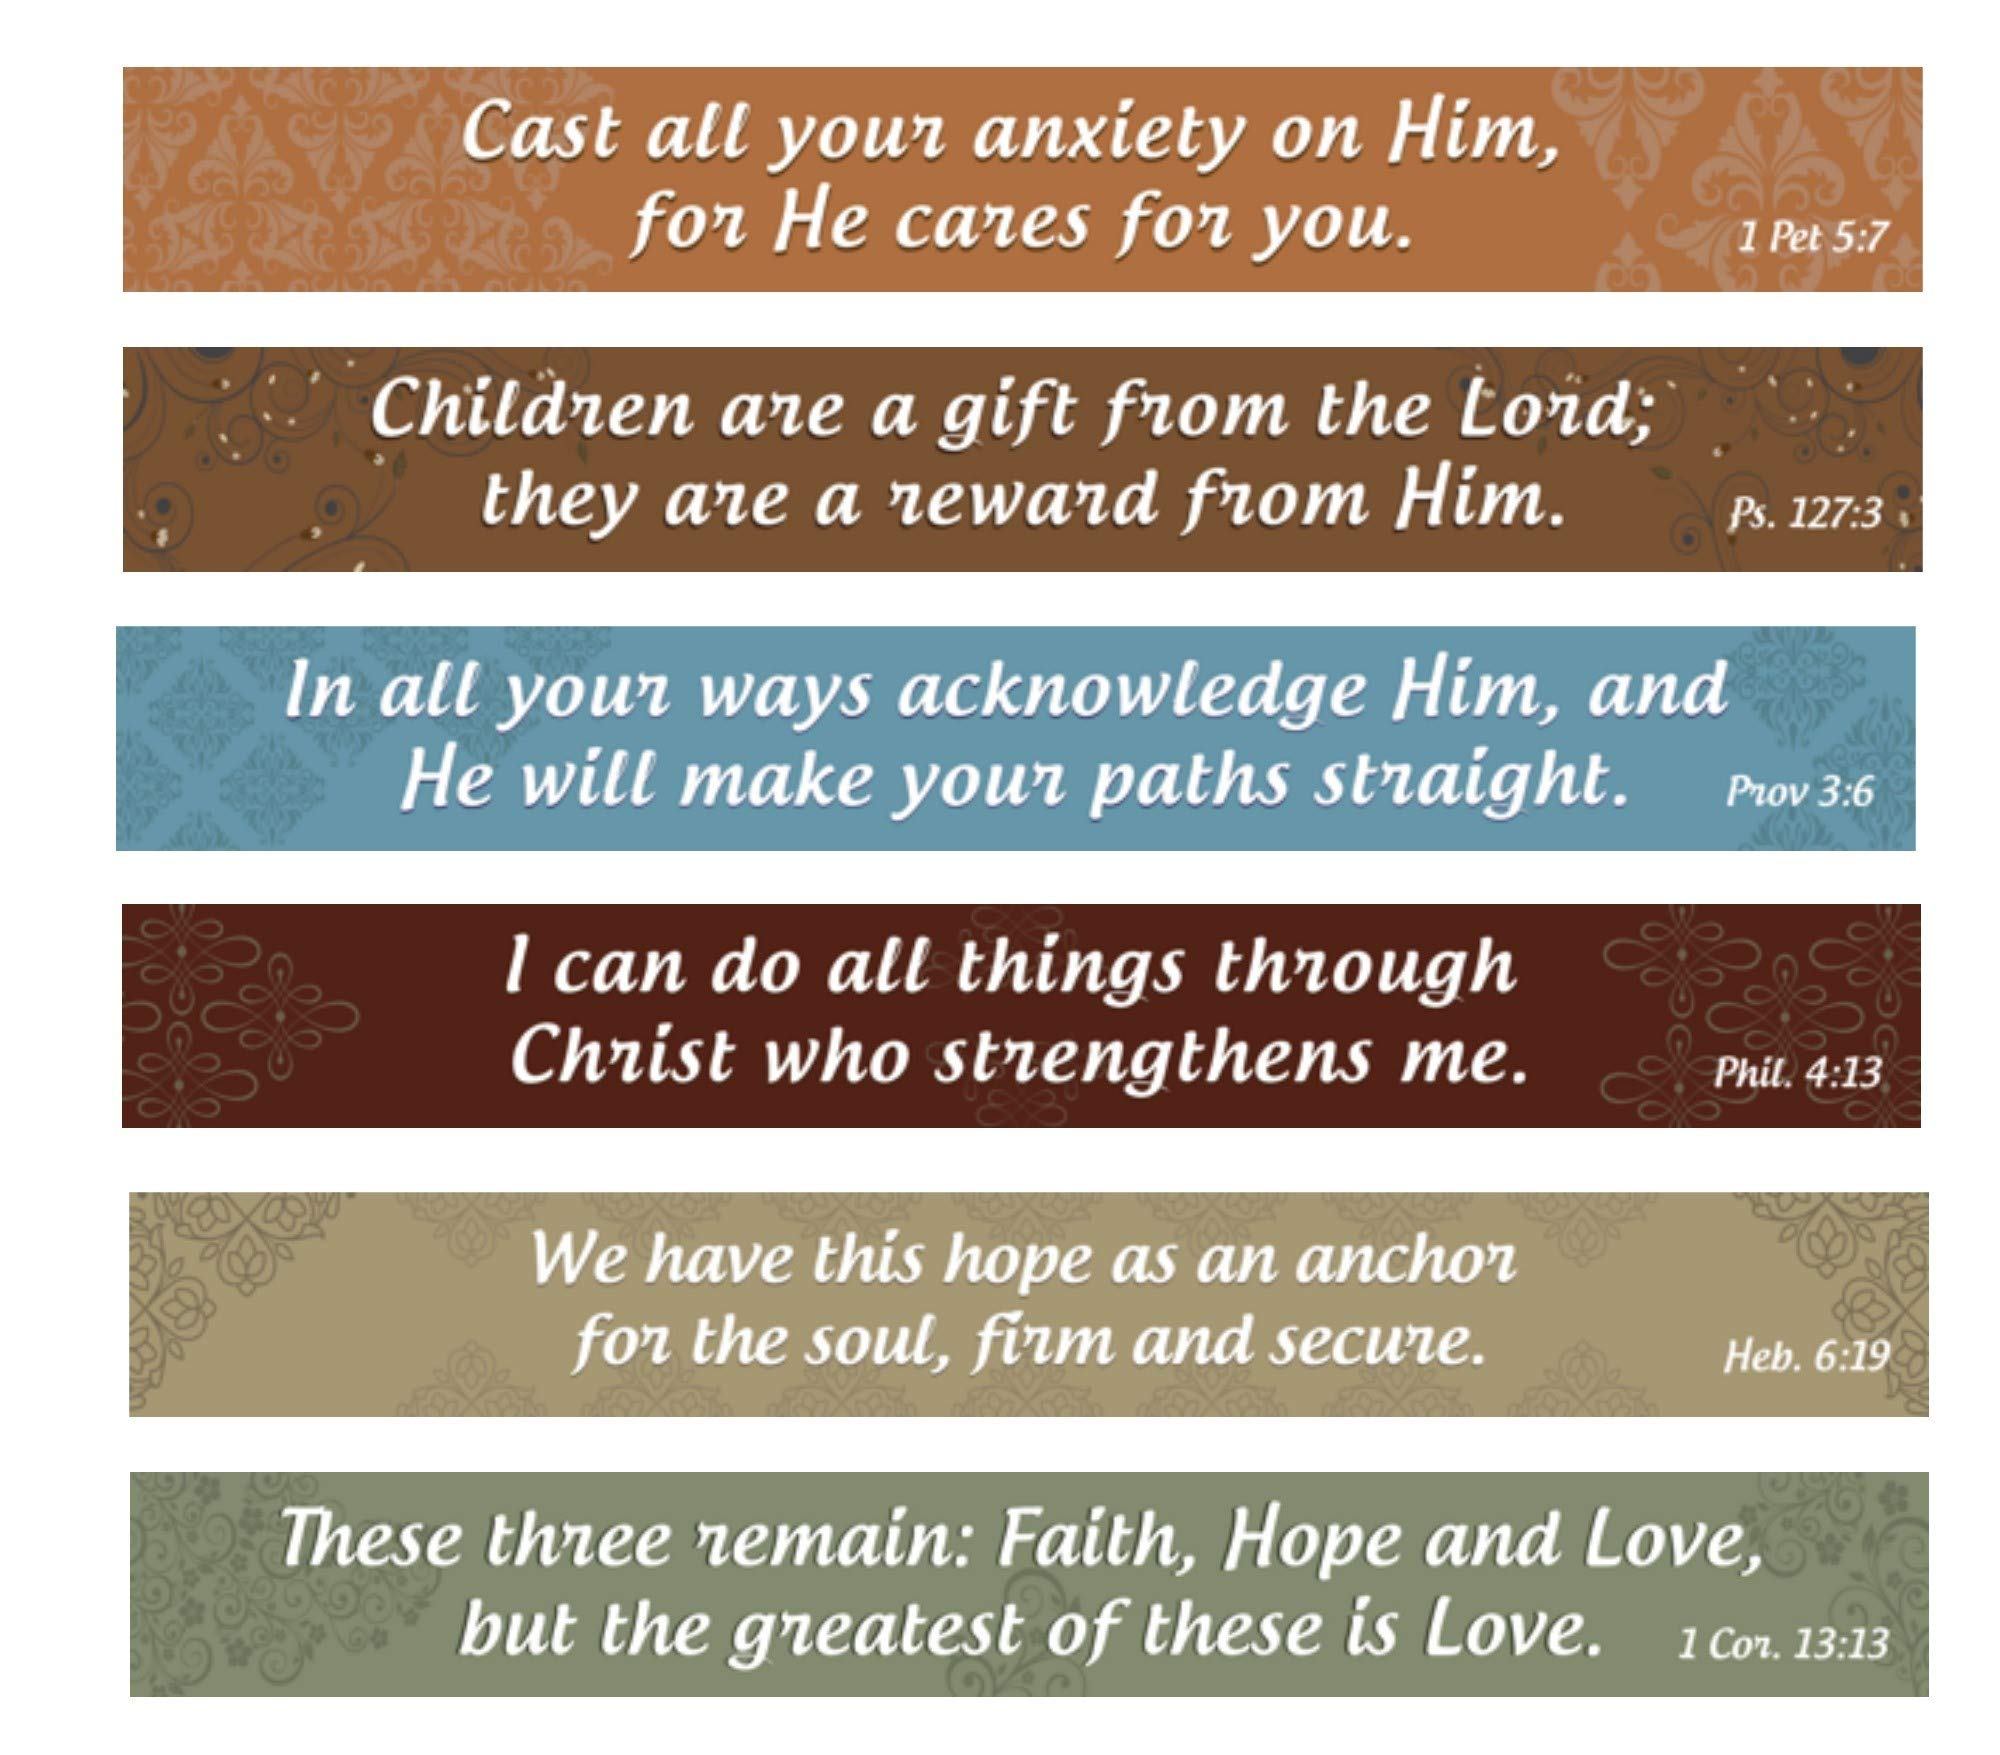 Home and Beyond Christian Magnets Inspirational Bible Verse Kitchen Magnets Set of 6 on Flexible Refrigerator Magnet Strips High Strength Magnets- Christian Gifts Made In The USA